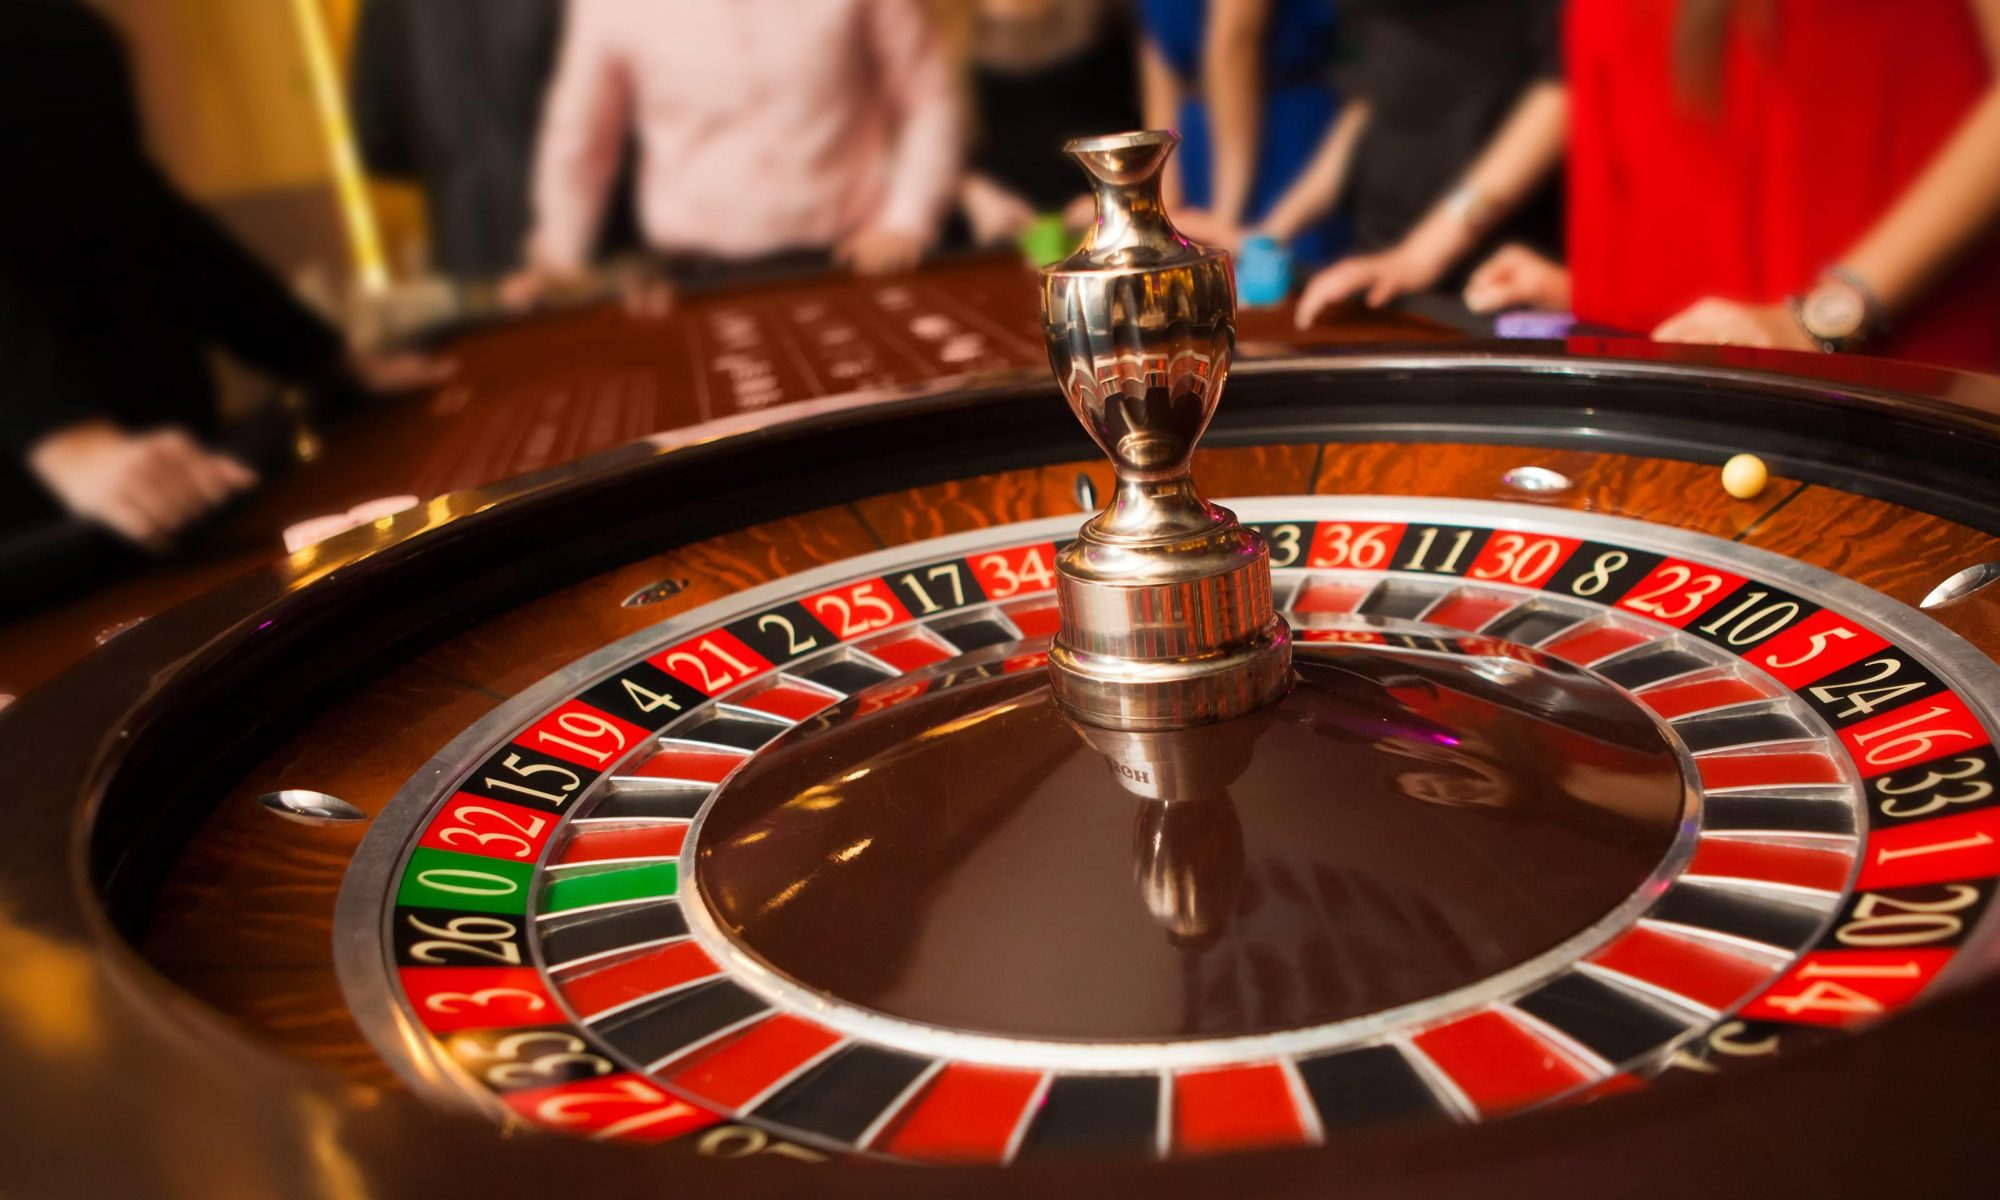 Casino roulette is rigged